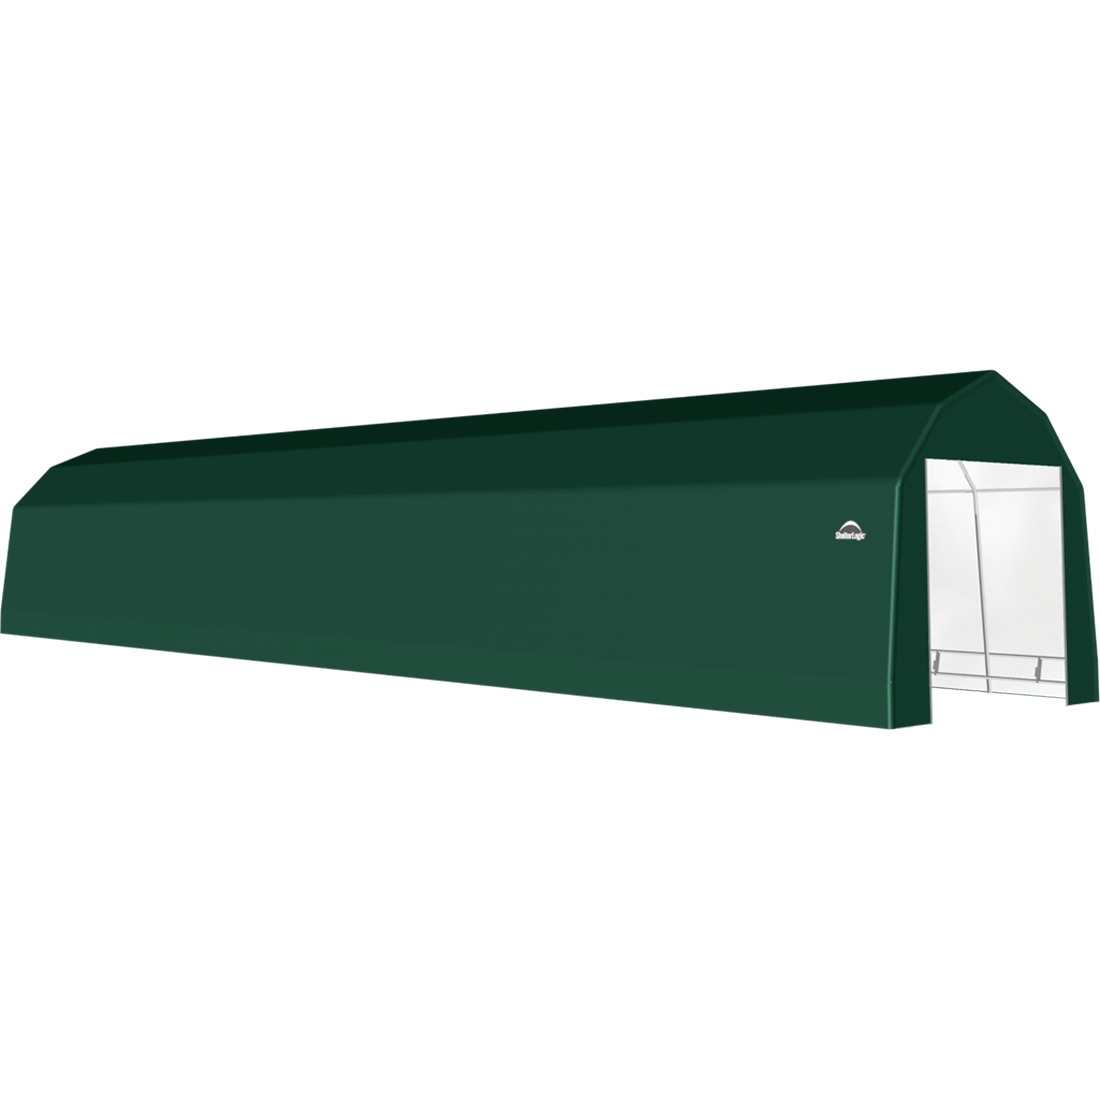 SP Barn 12X60X11 Green 14 oz PE Shelter